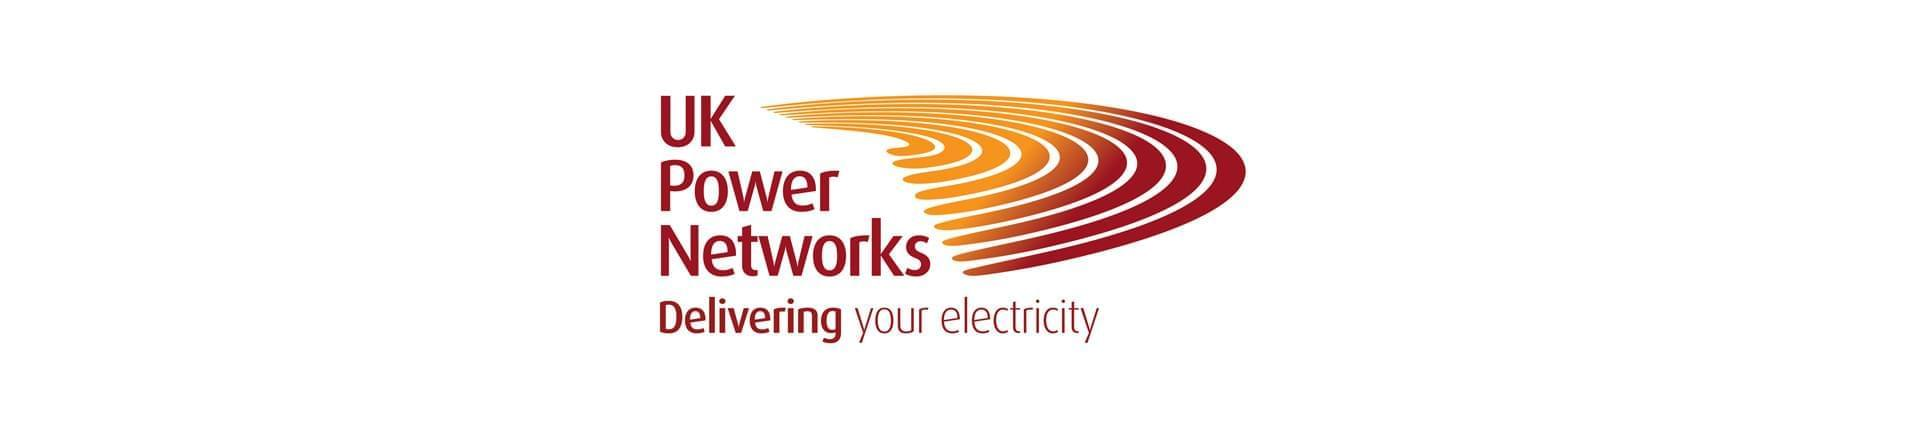 image of UK power network logo